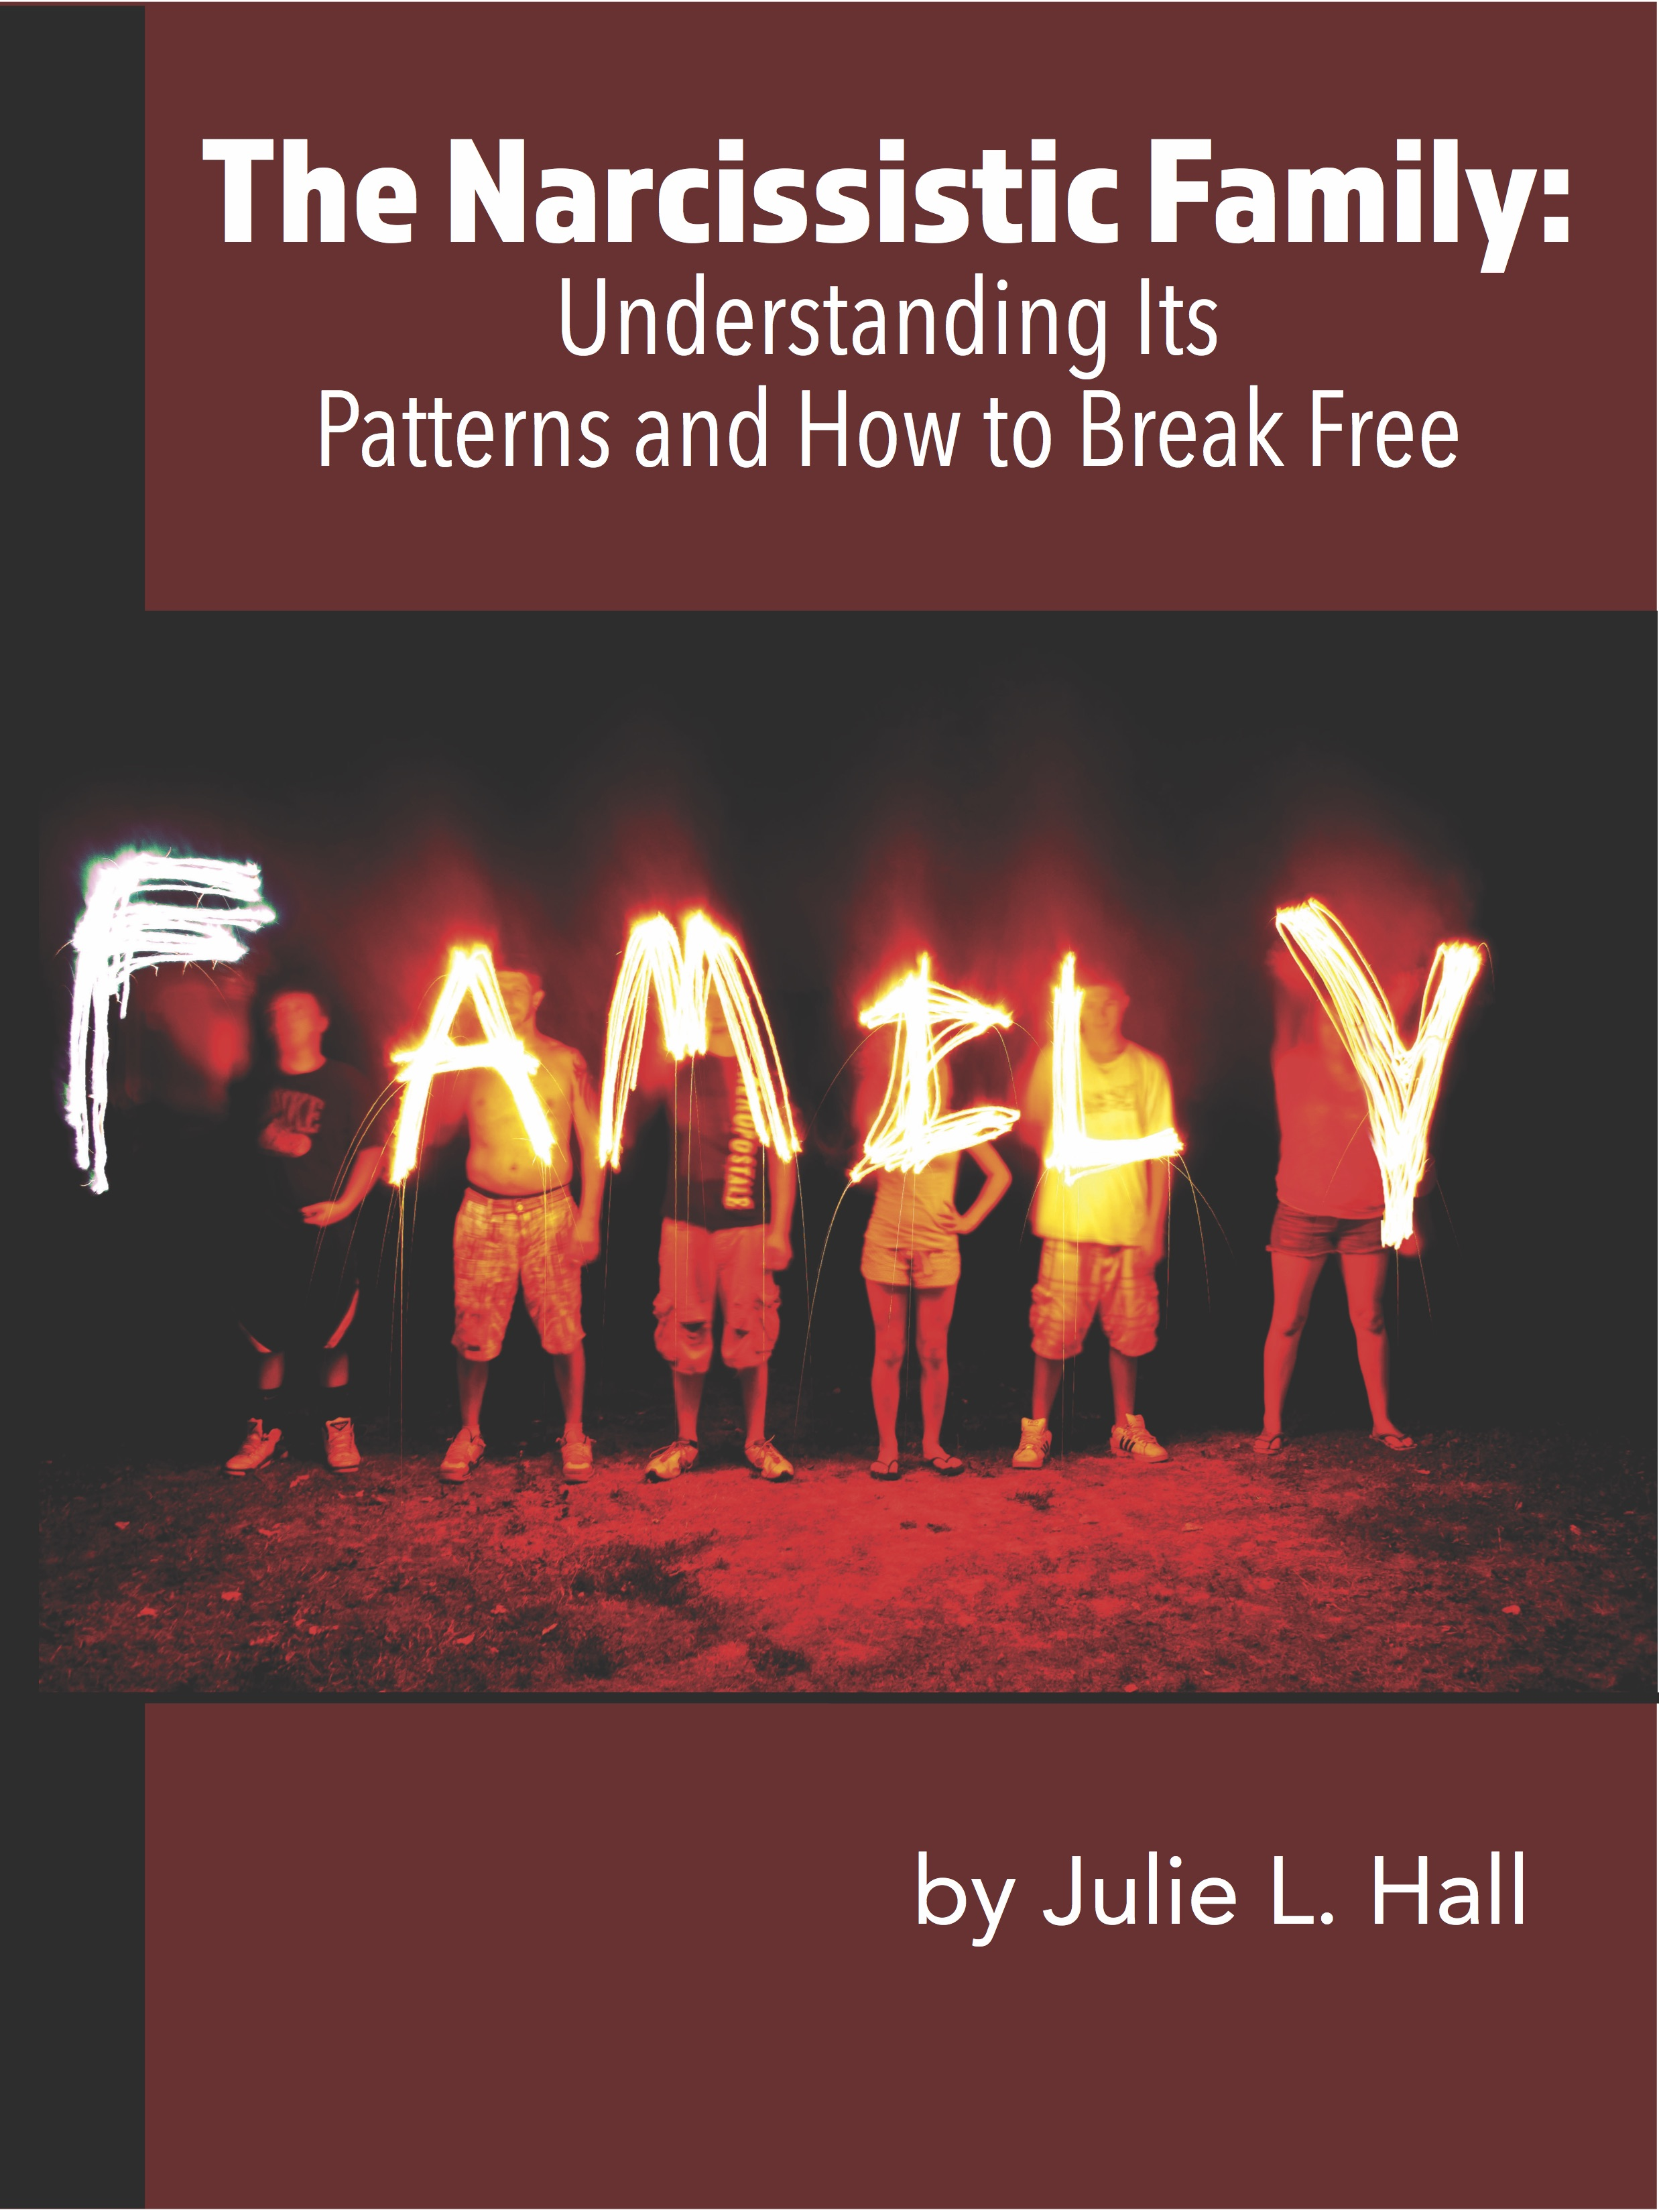 The Narcissistic Family by Julie Hall